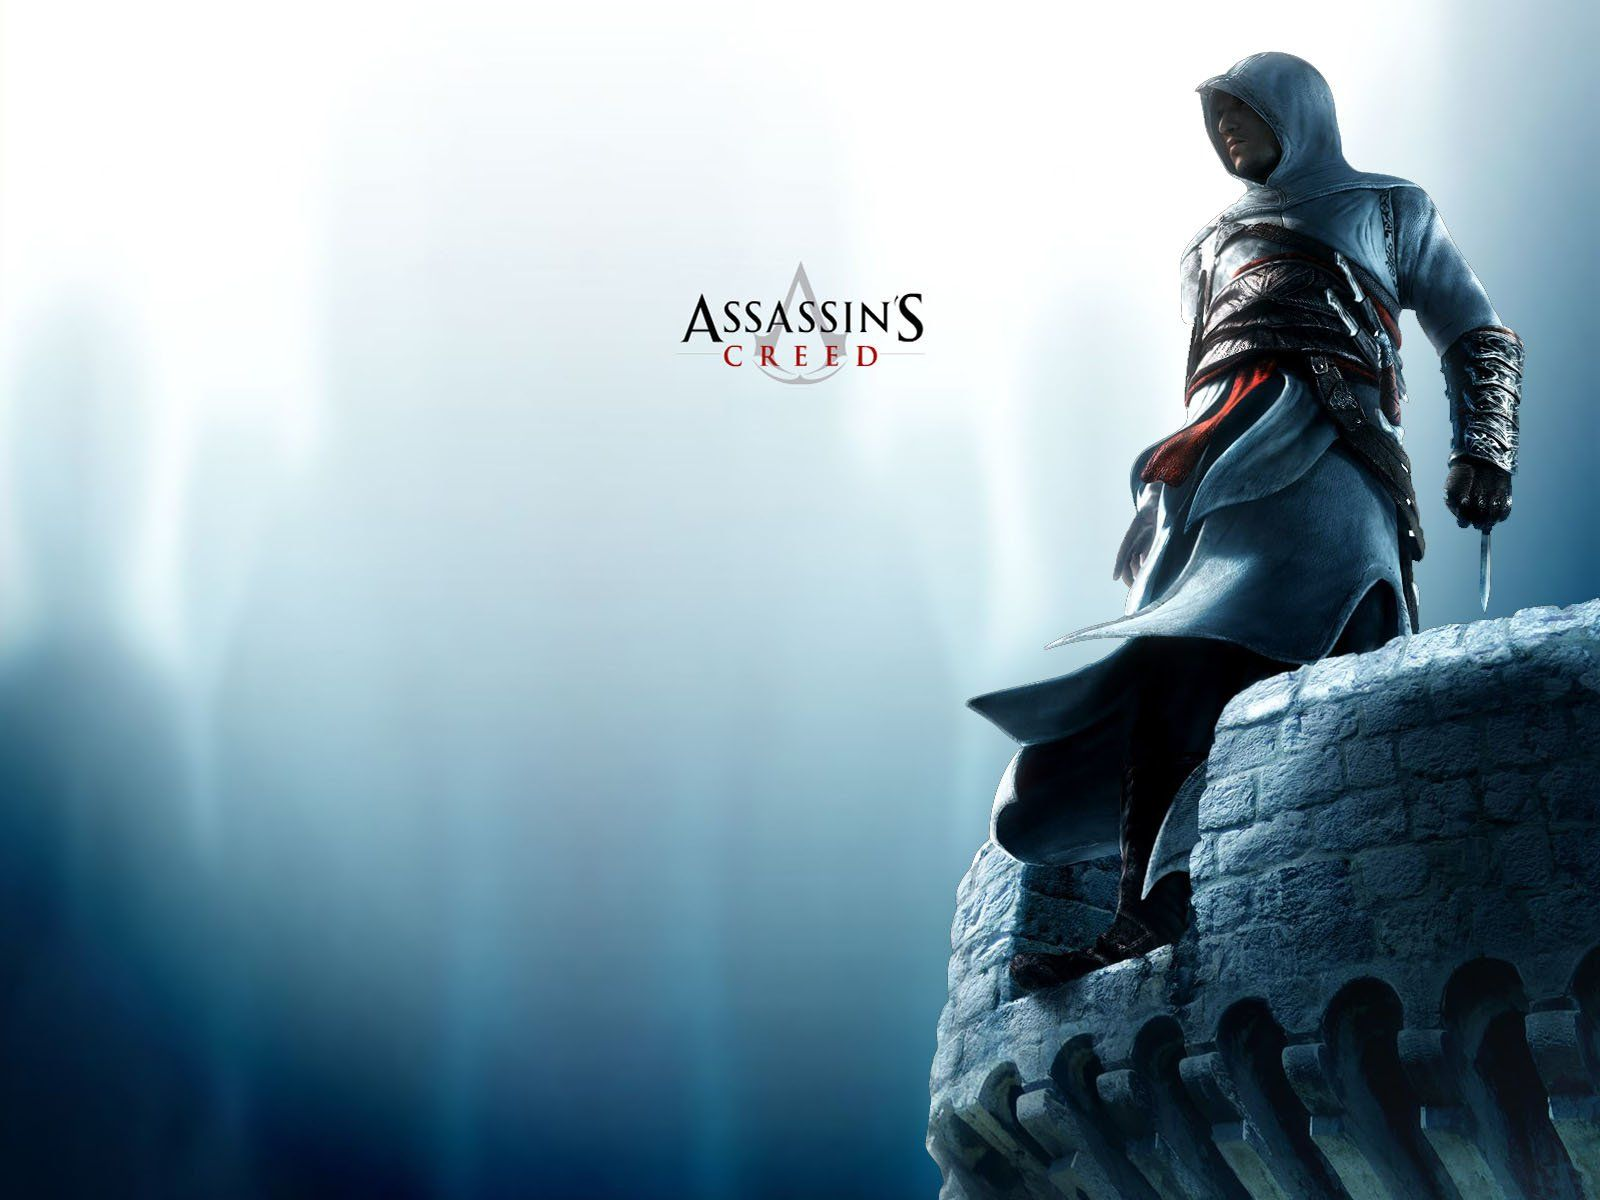 Assassins creed hd wallpapers backgrounds wallpaper wallpapers assassins creed hd wallpapers backgrounds wallpaper voltagebd Image collections